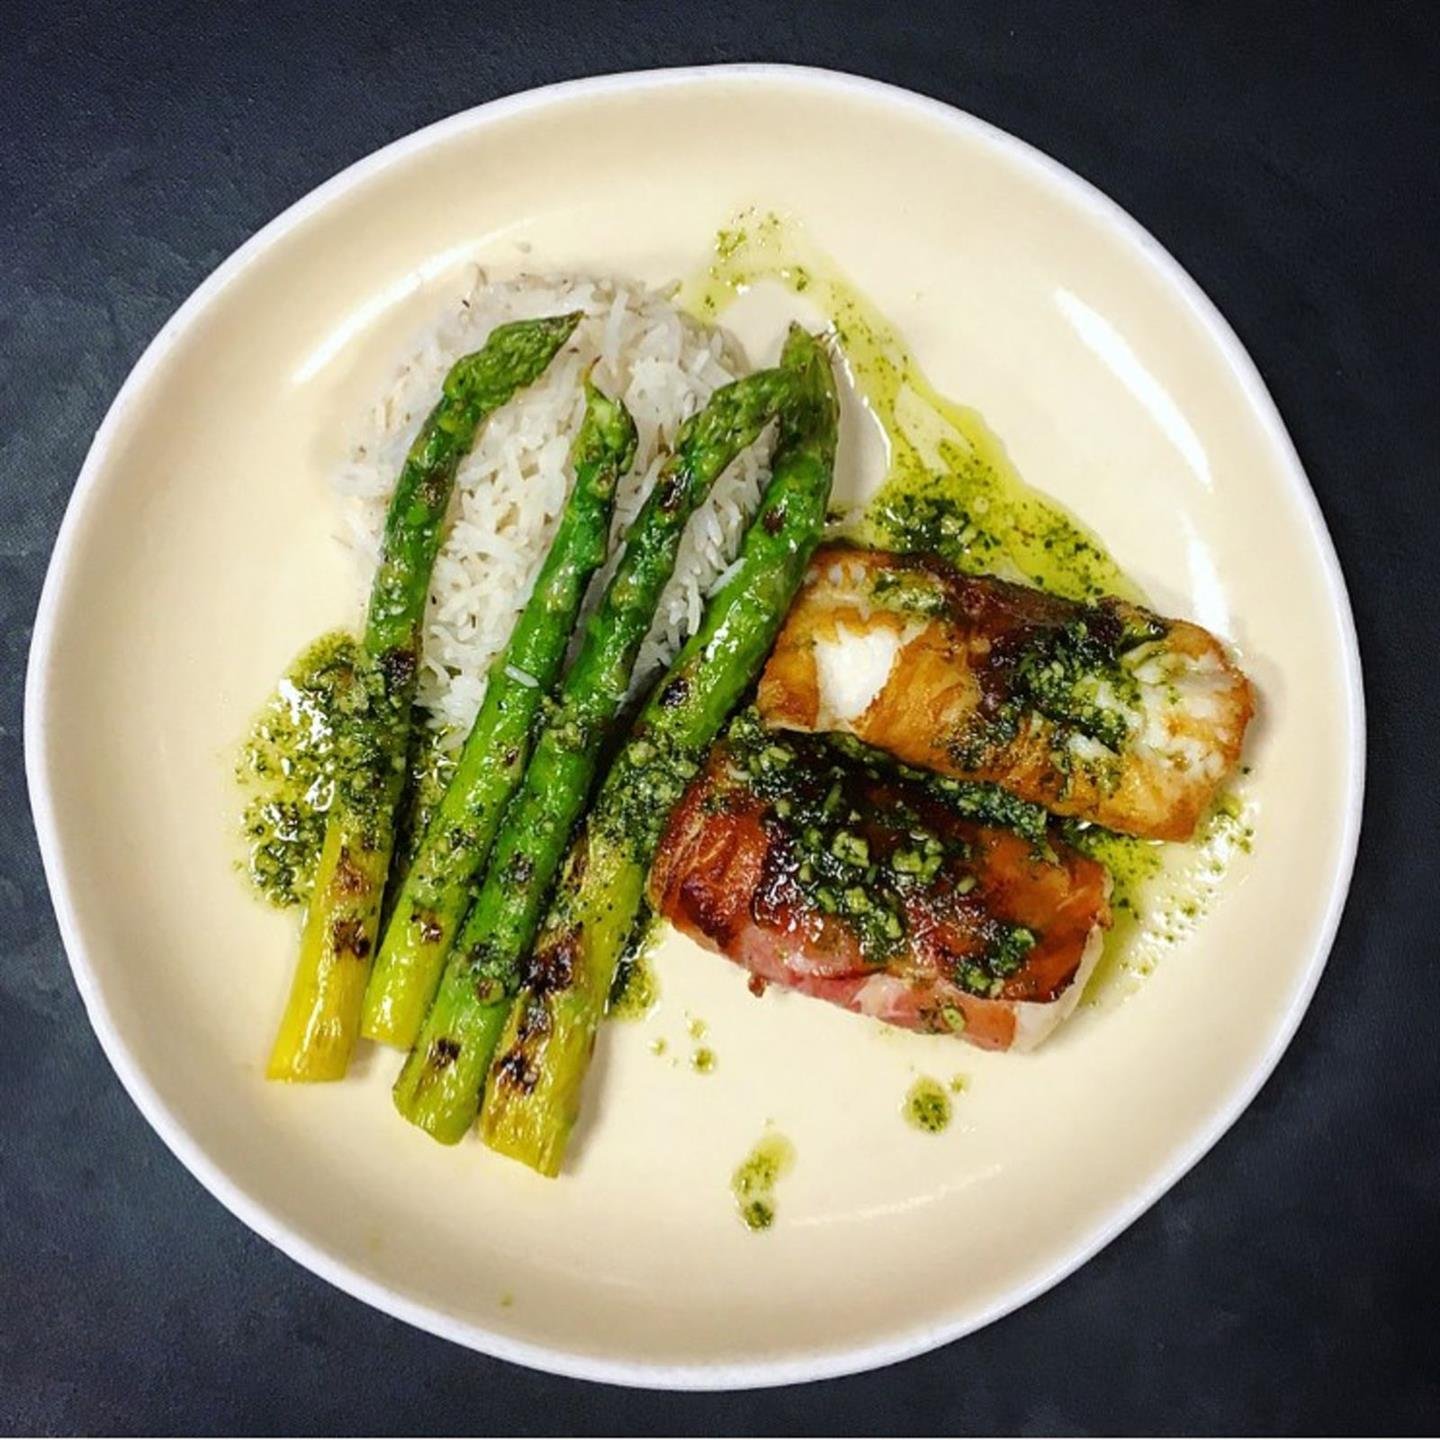 grilled chicken with a side of asparagus